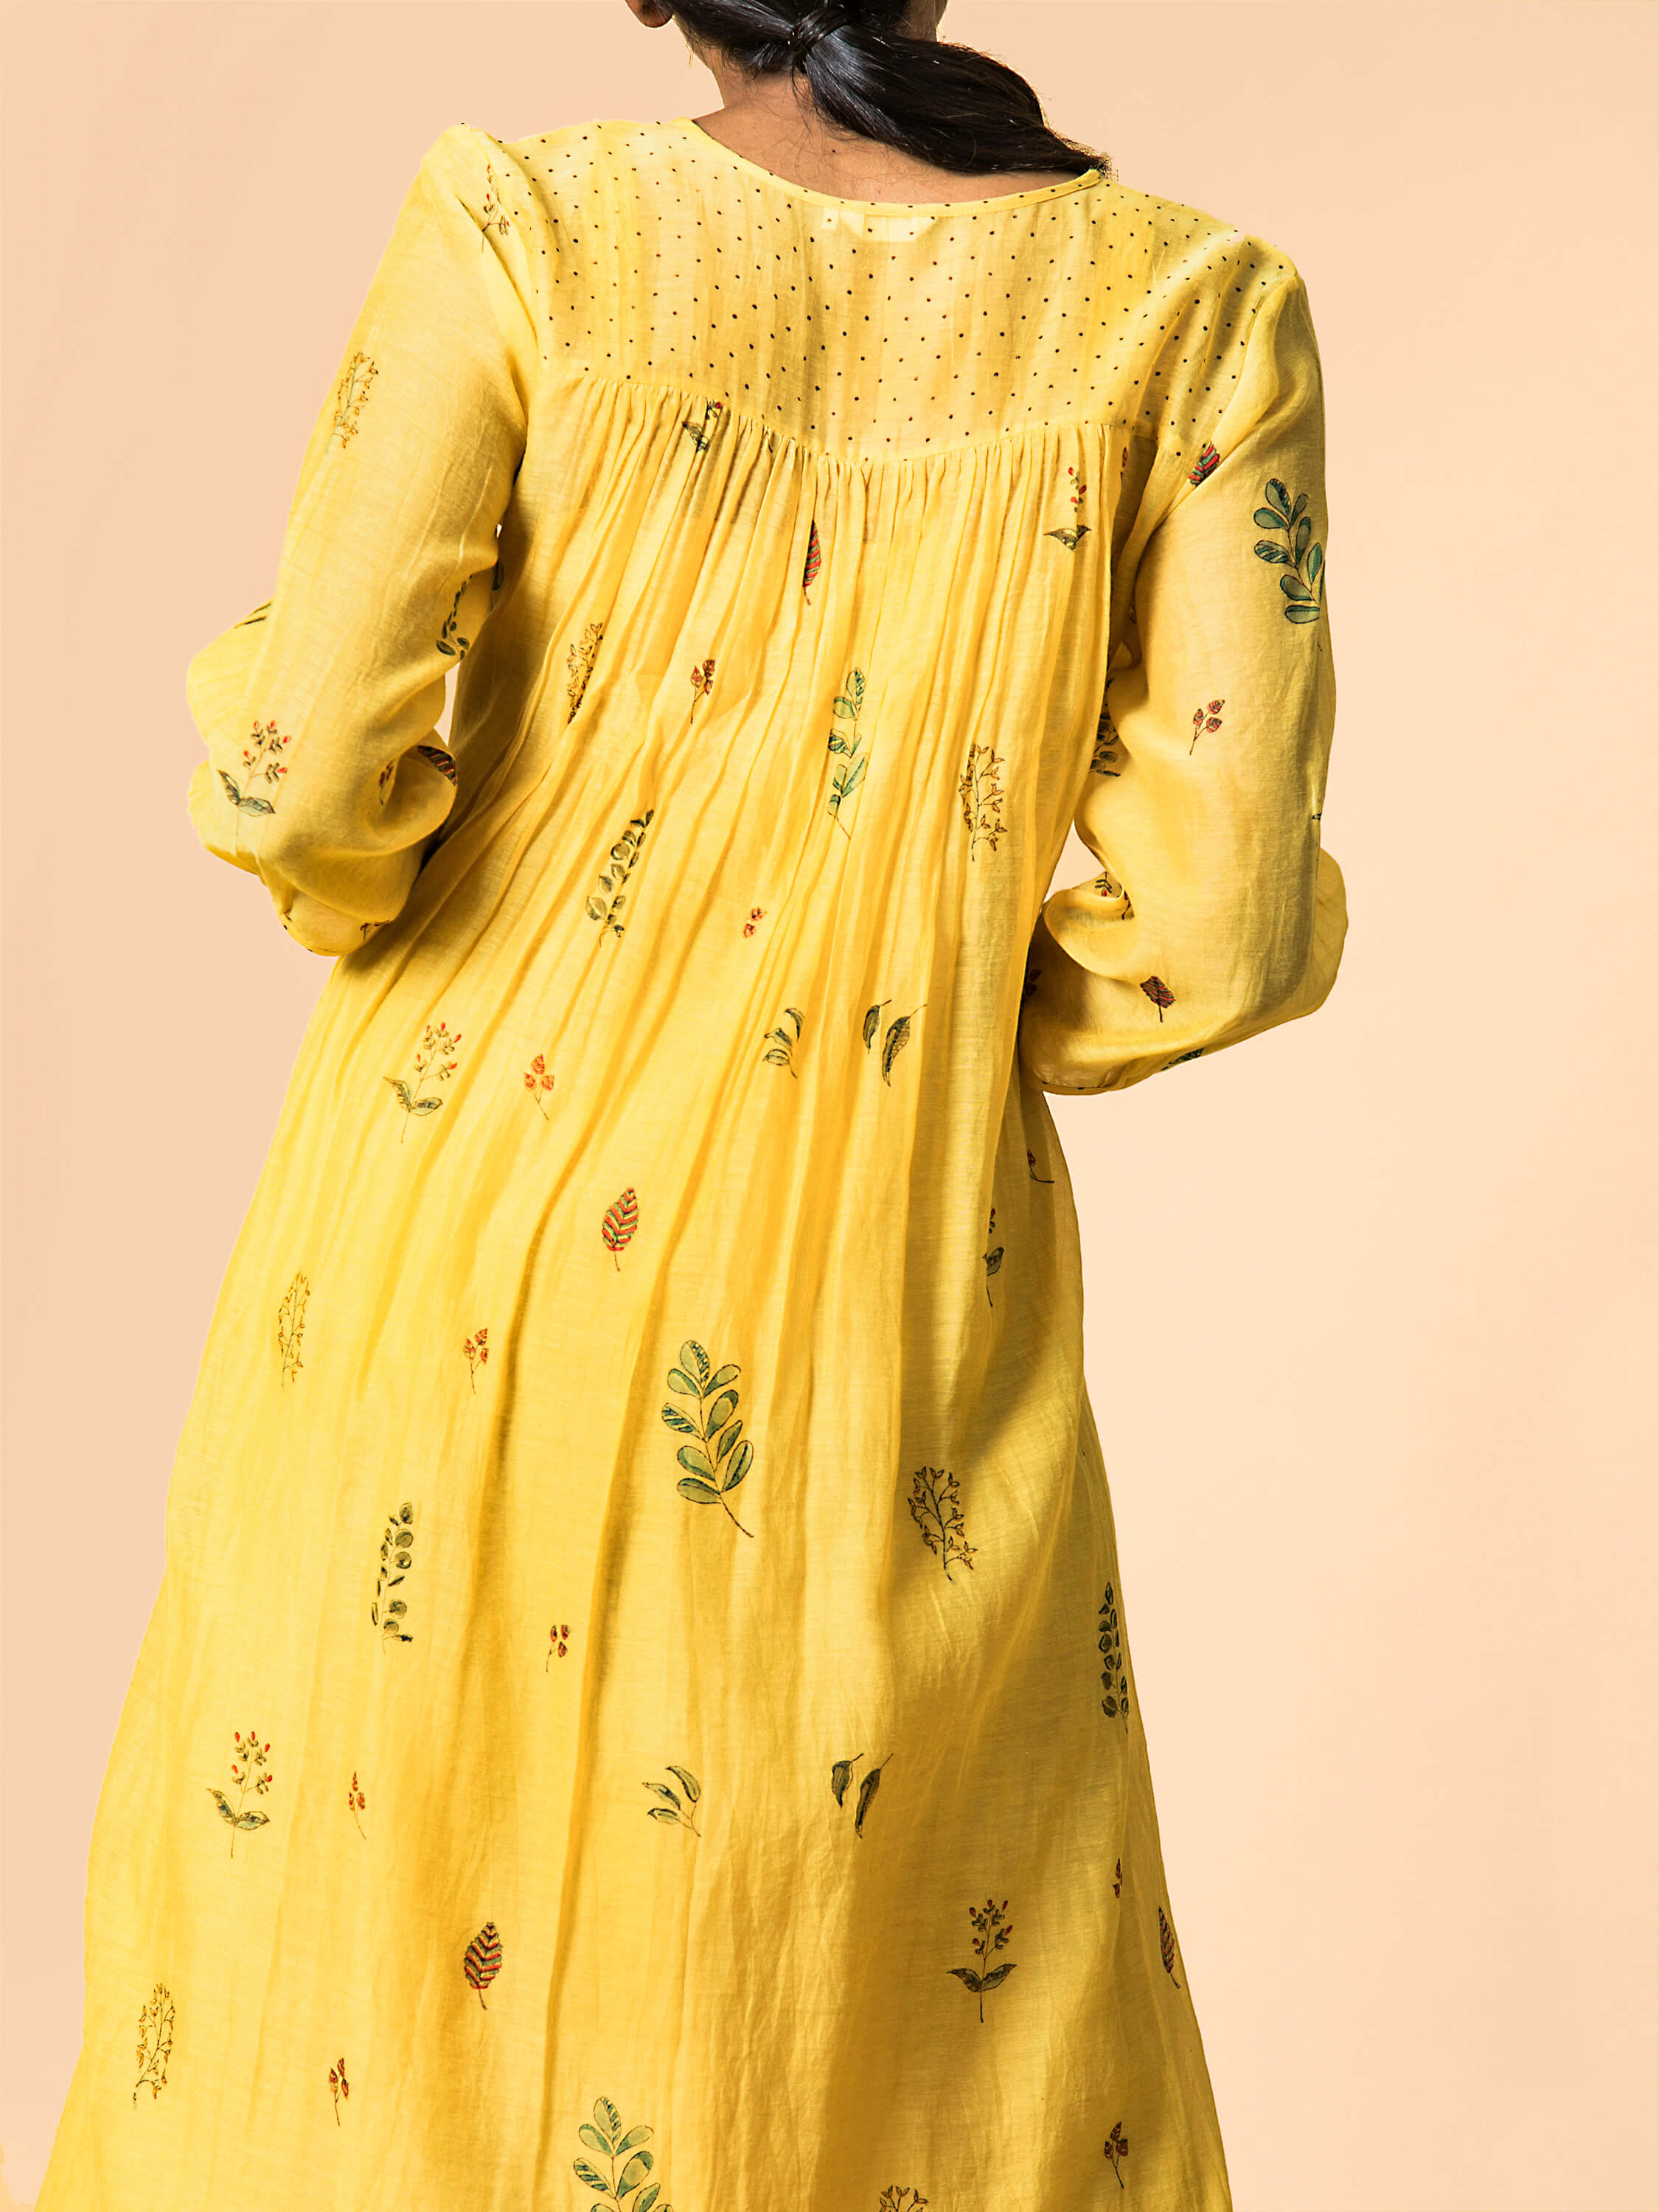 Cornfield Midi Dress - BunaStudio